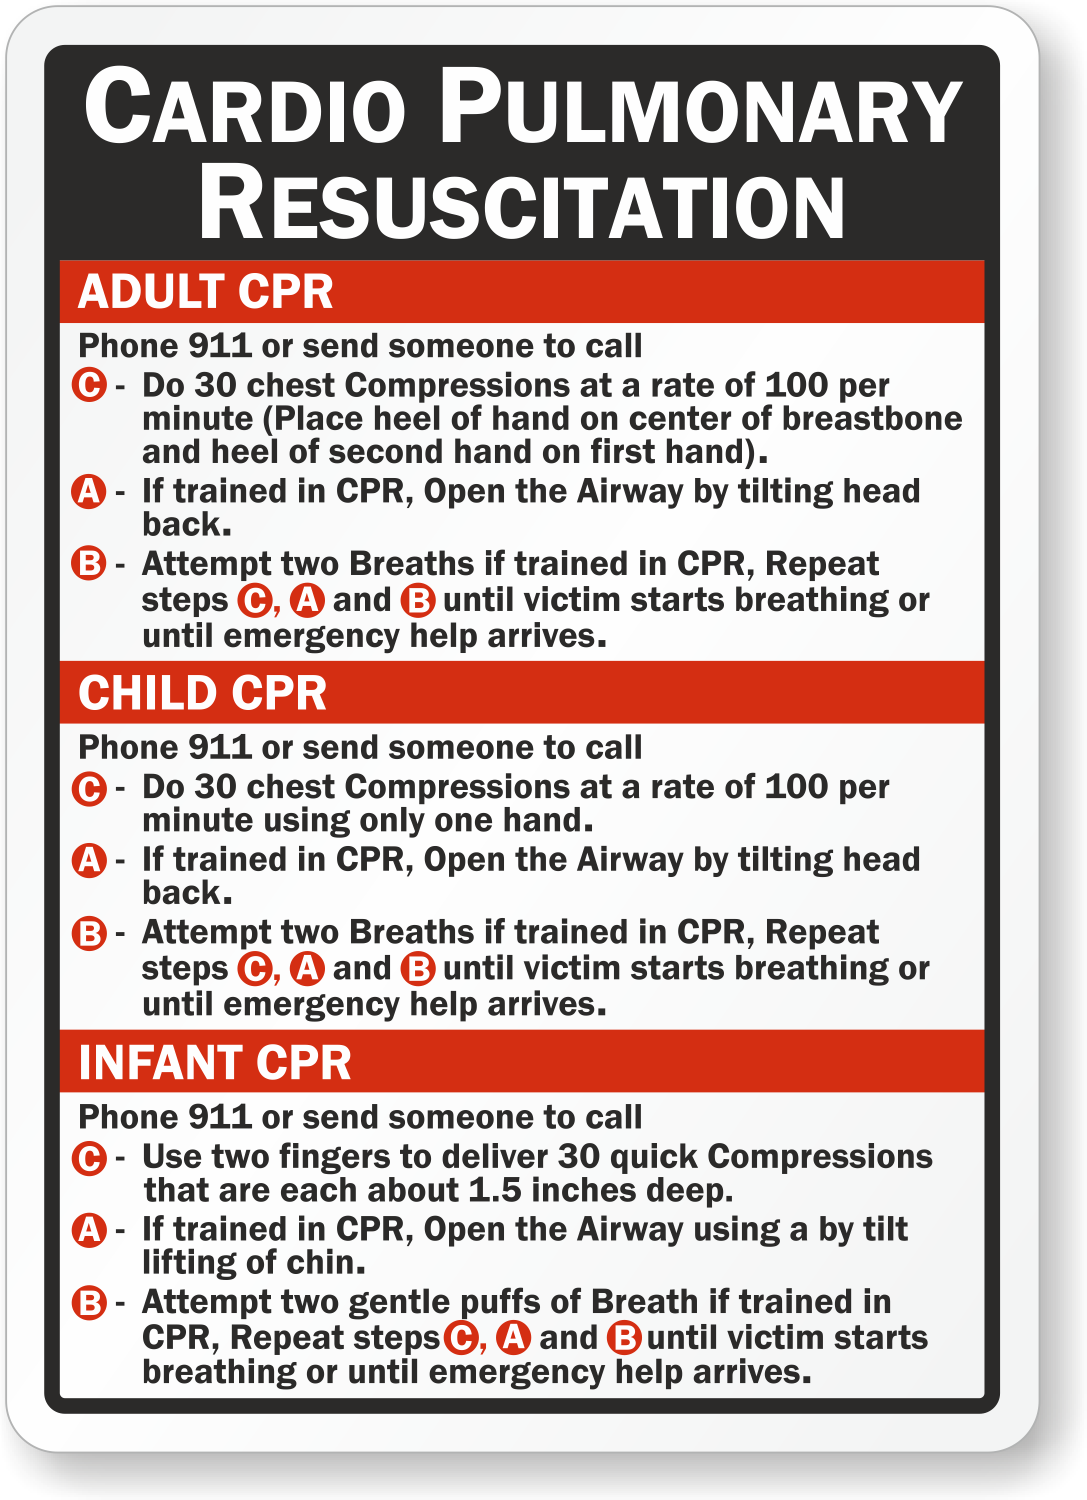 Cardio Pulmonary Resuscitation Adult, Child, Infant Cpr. Conversion Signs. Creative Wall Signs Of Stroke. Closed Signs Of Stroke. Png Signs Of Stroke. Catcher Signs. Please Call Signs Of Stroke. Free Printable Wedding Hashtag Signs Of Stroke. 14 December Signs Of Stroke